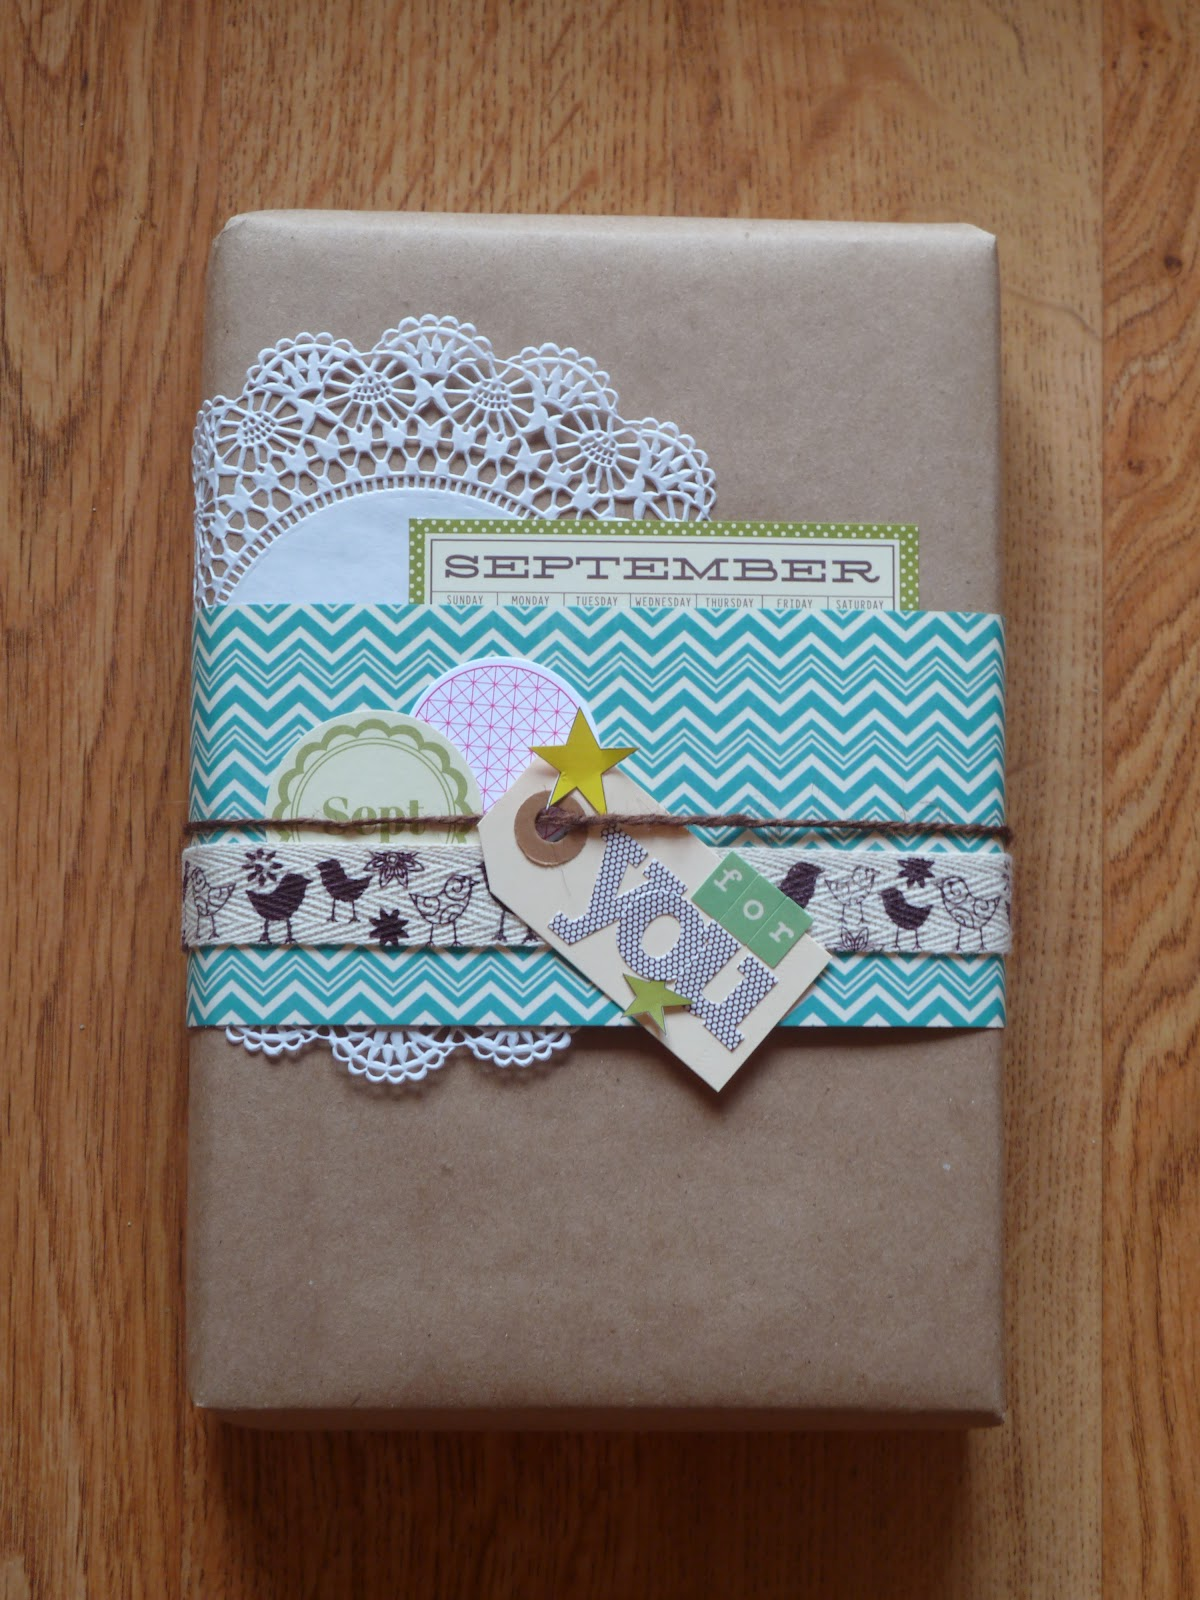 Creative Gift Wrapping Ideas For Birthdays Part - 18: Giftwrap Goodness: Creative Gift Wrap